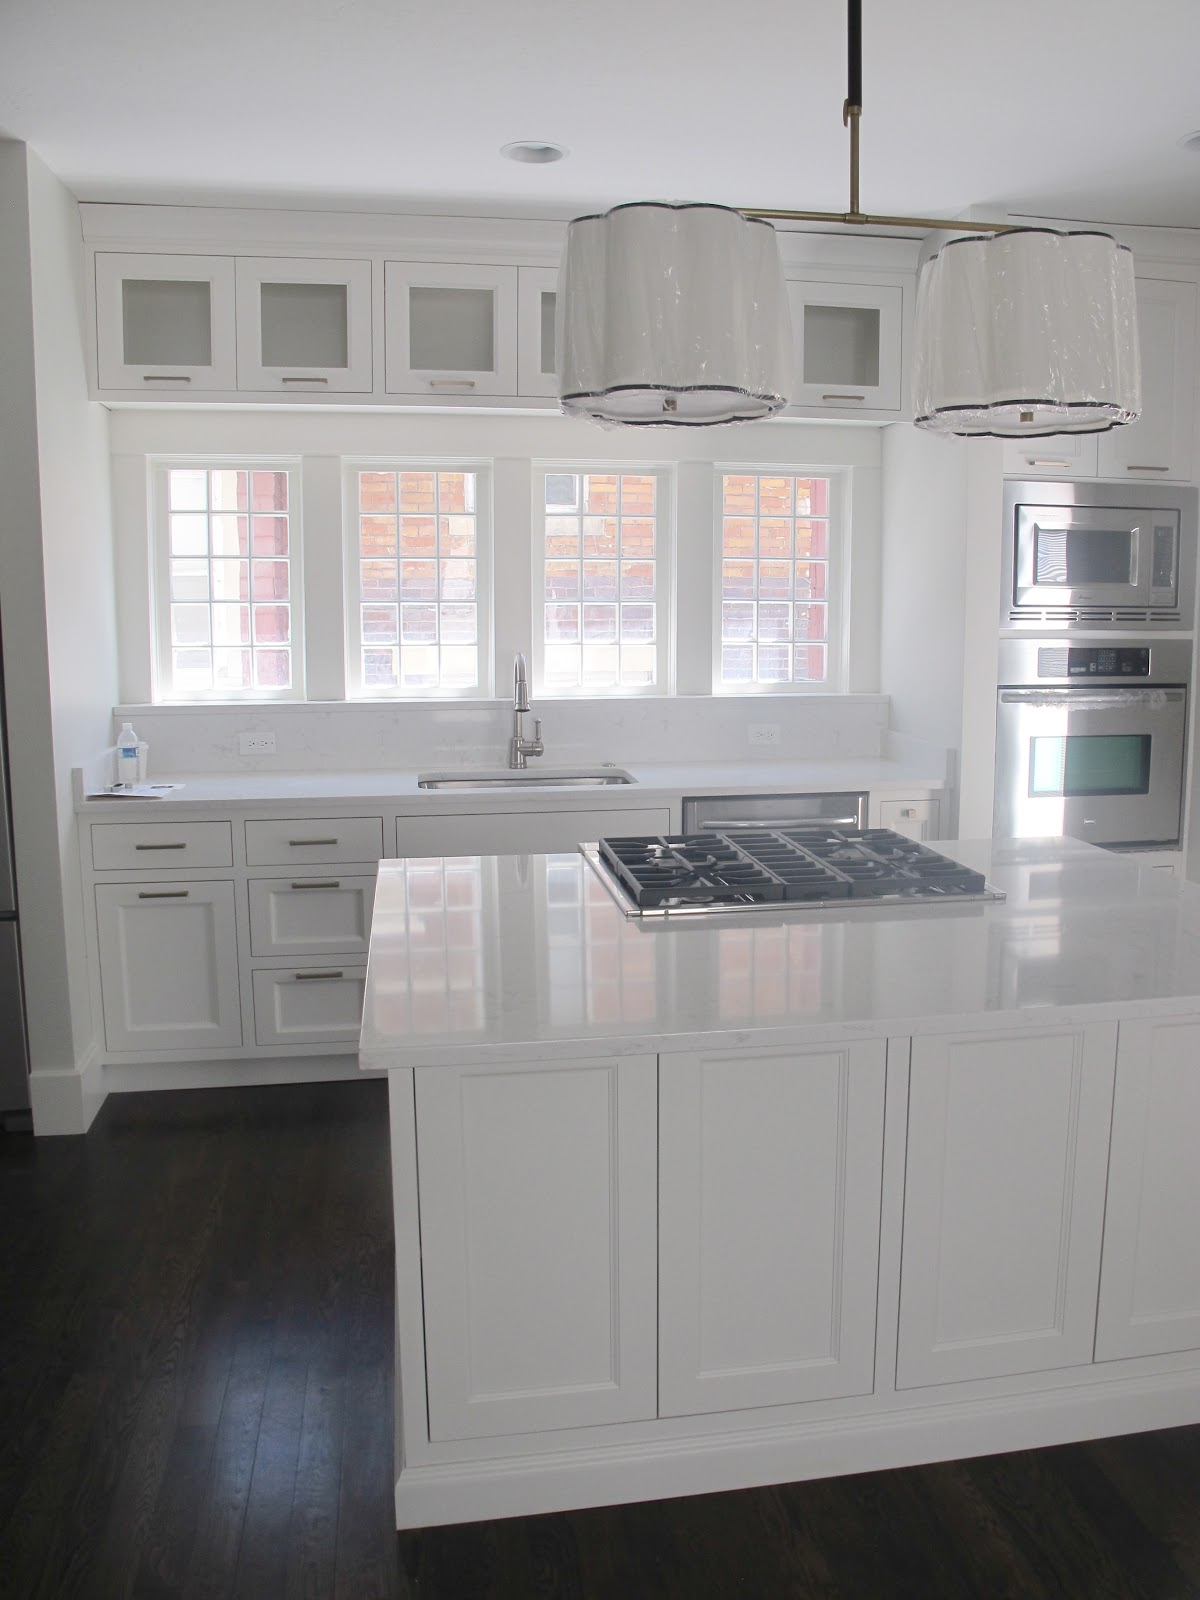 Cambria Quartz Countertop with White Cabinets